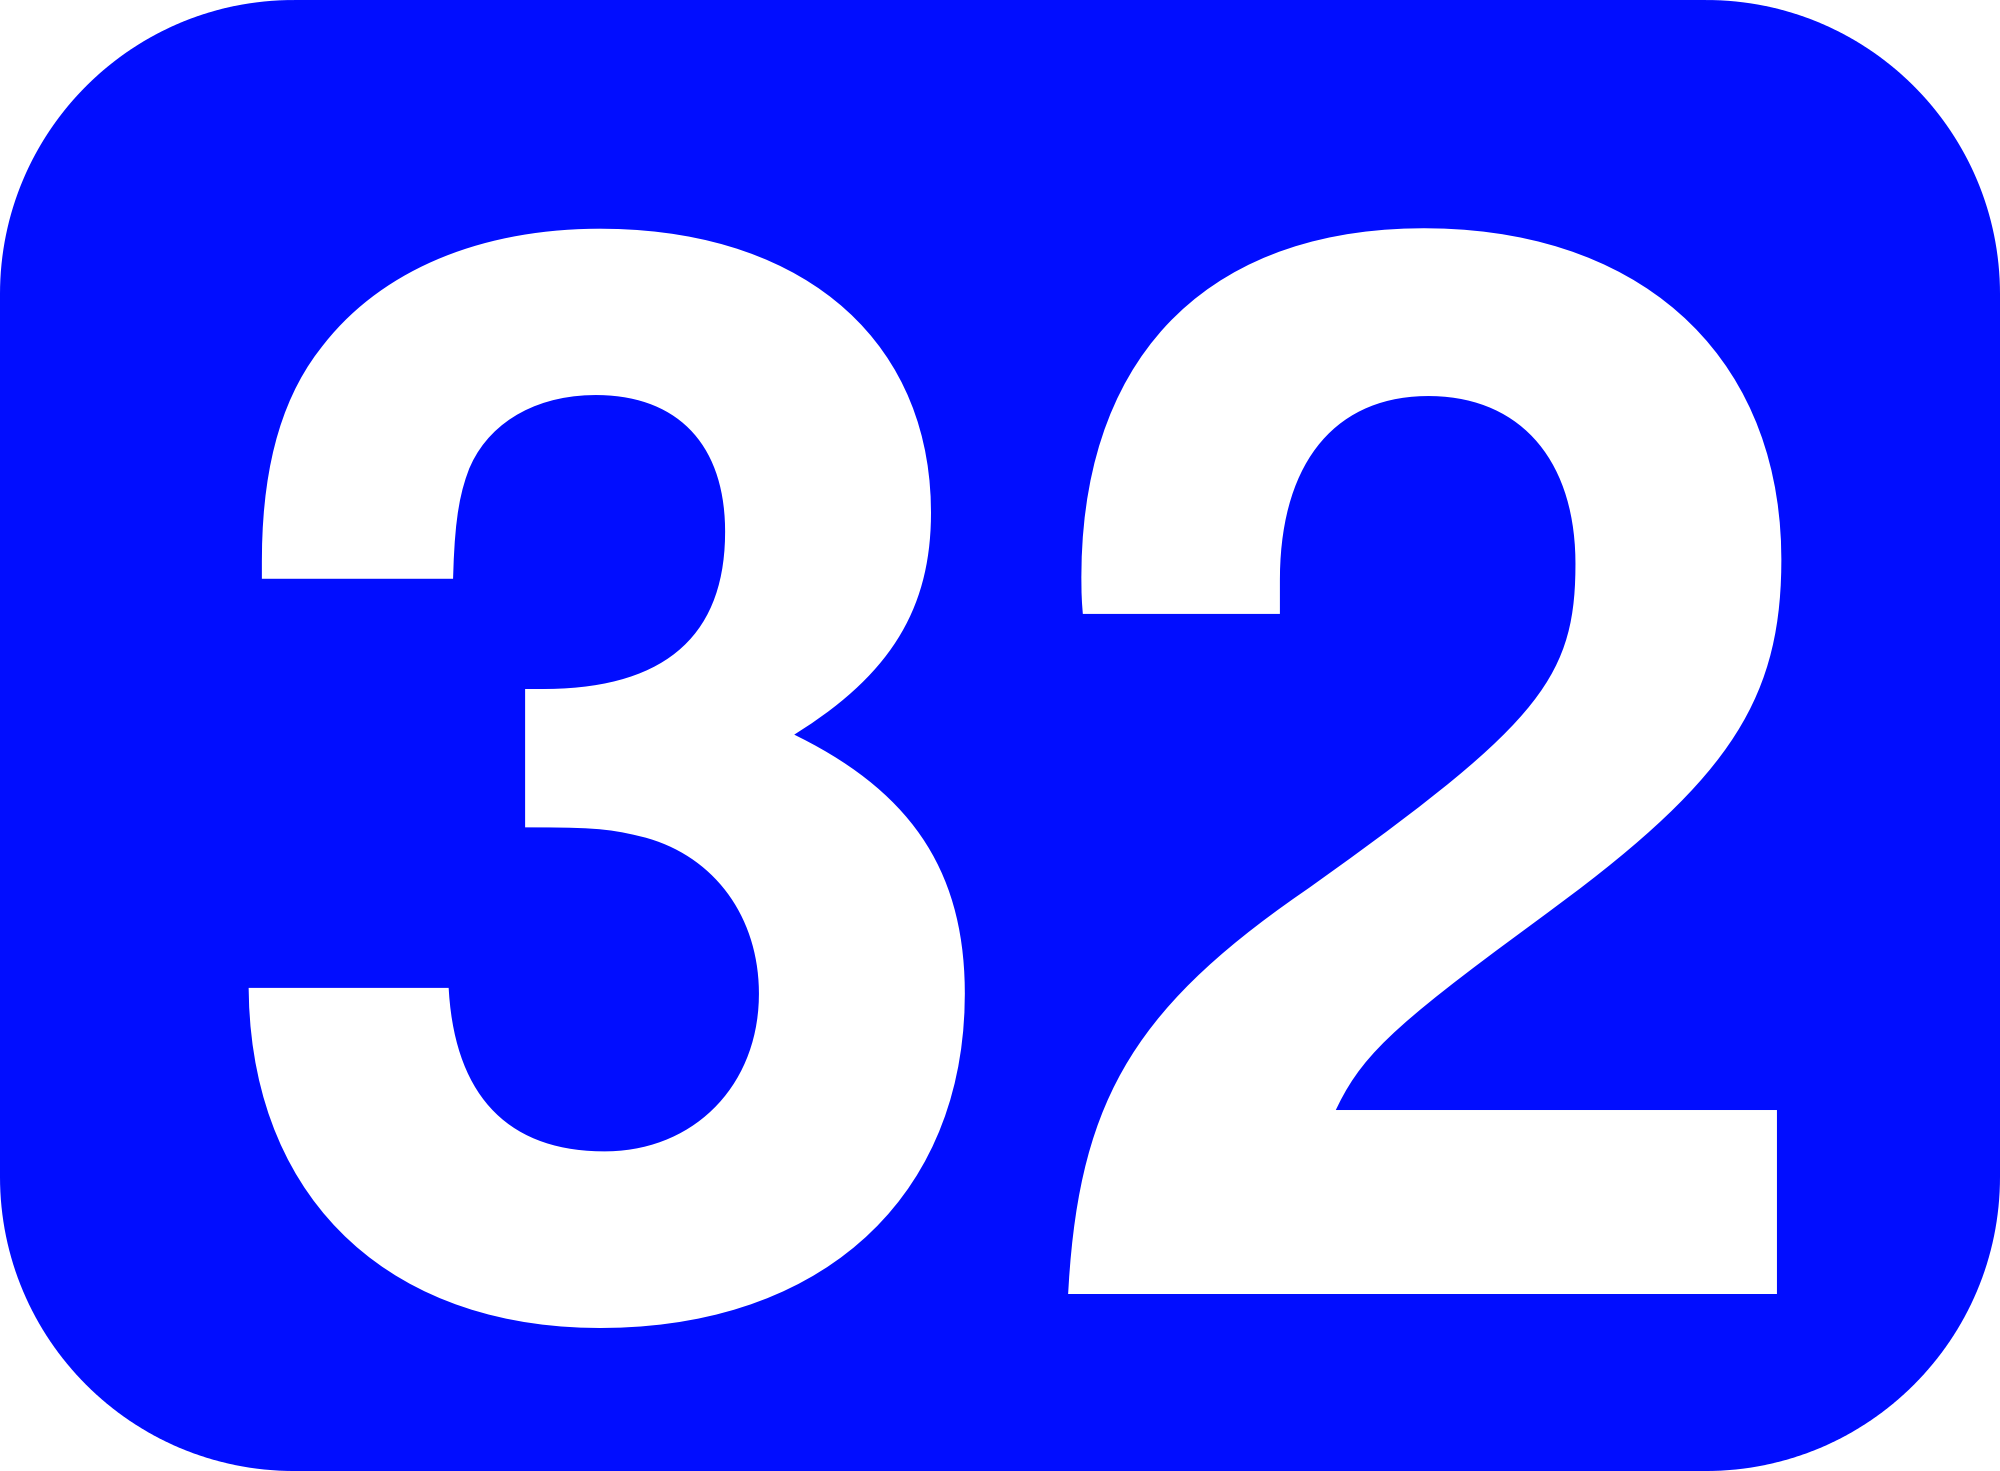 File:32 white, blue rounded rectangle.png